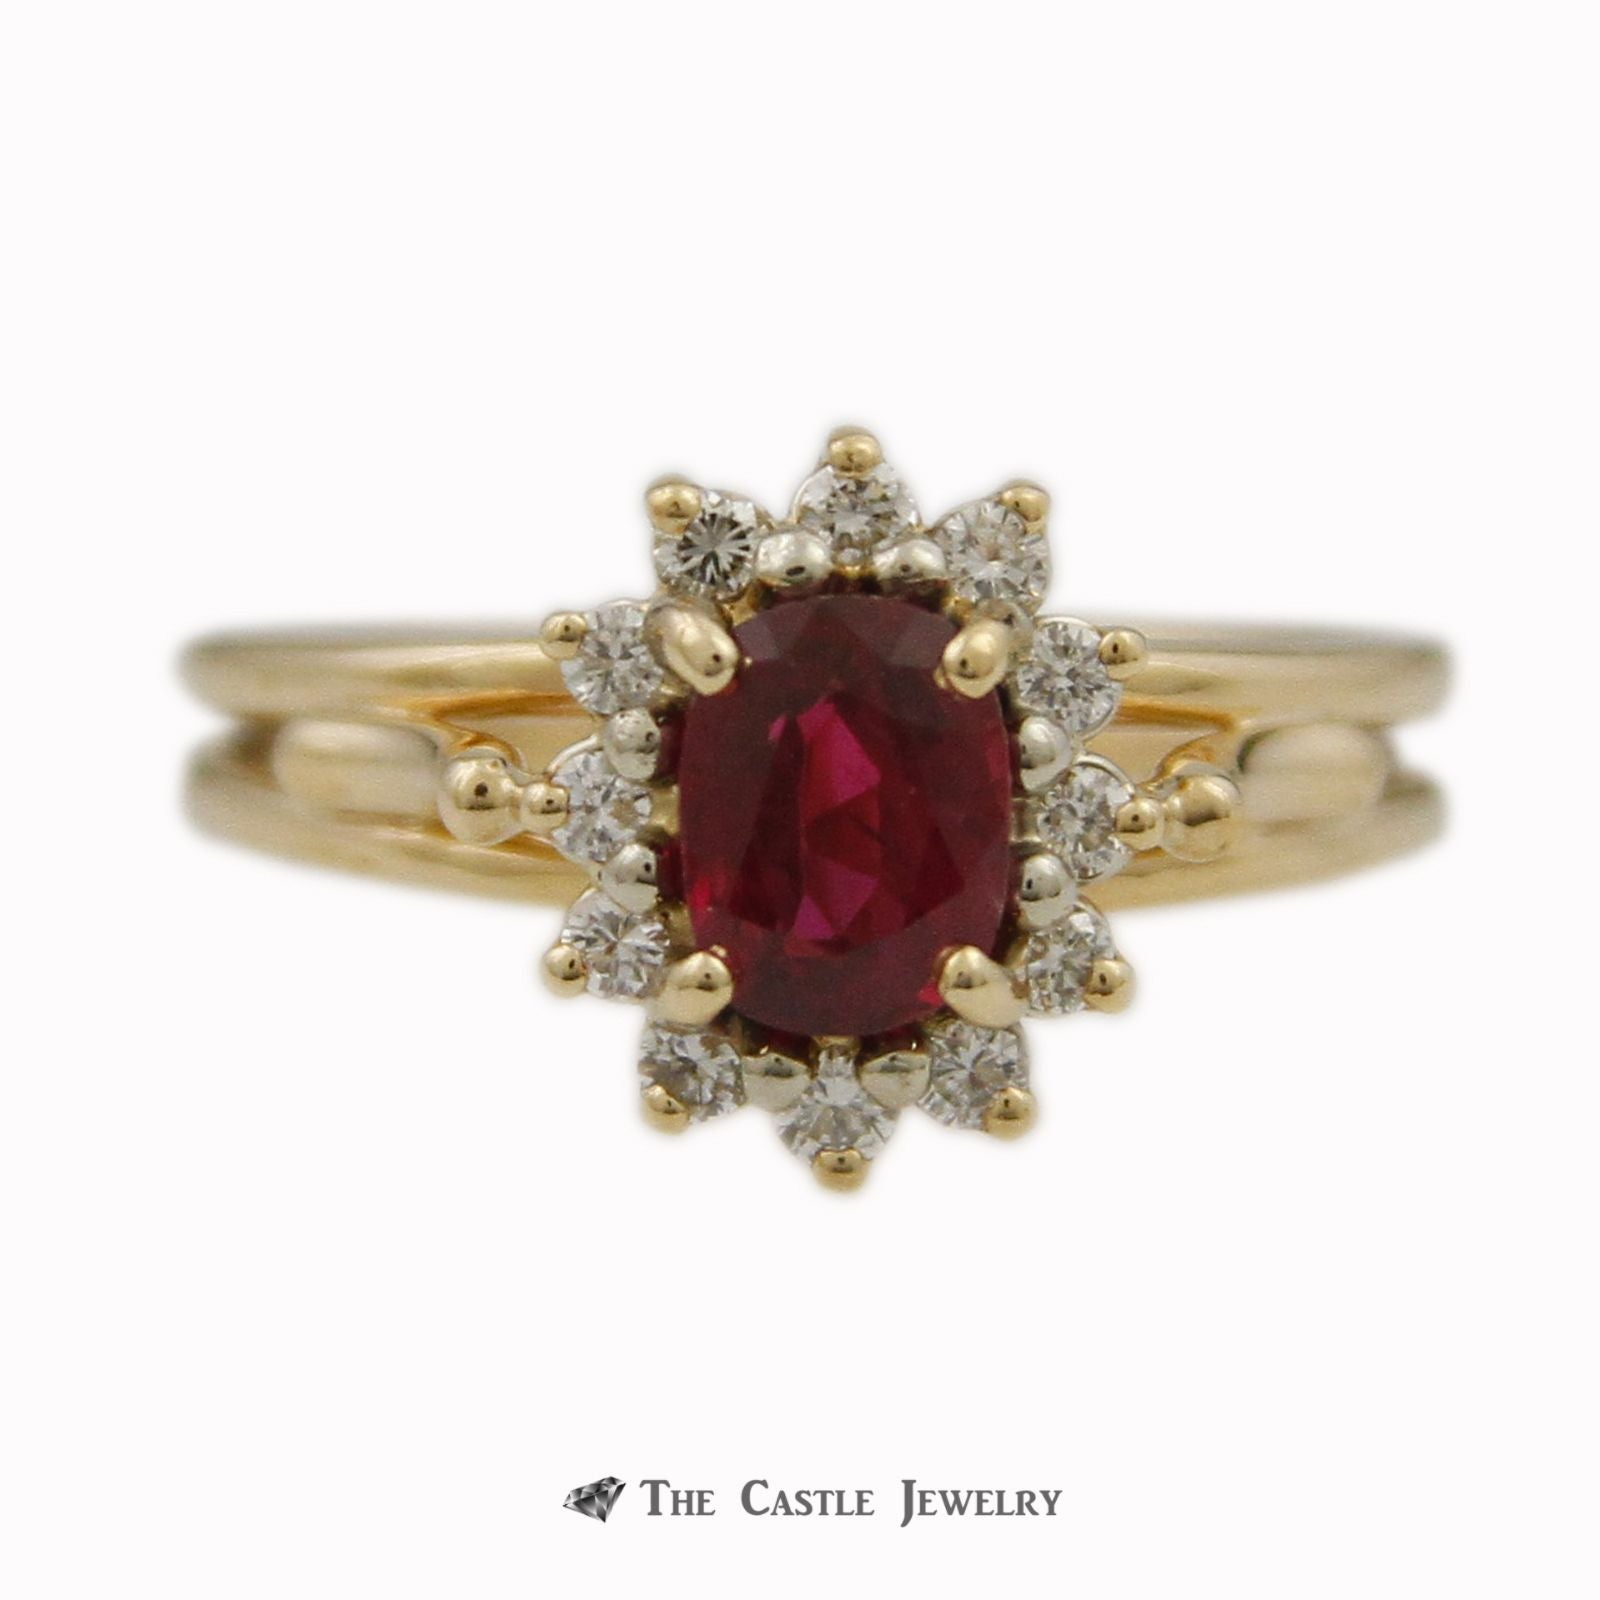 Oval Cut Ruby Ring with .25cttw Round Brilliant Cut Diamond Bezel & Cathedral Mounting